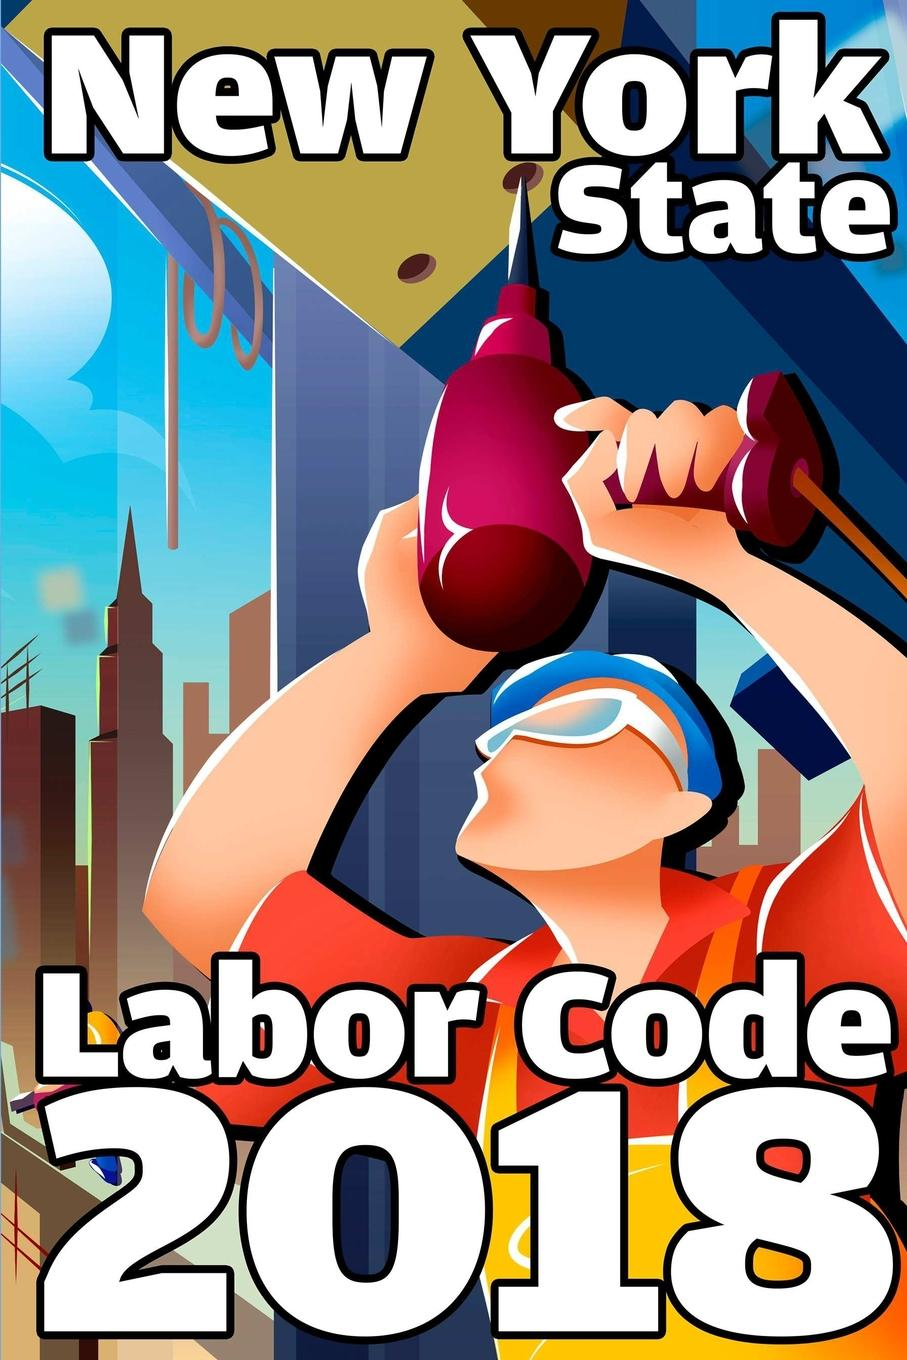 John Snape New York State Labor Code 2018 th colpitts granger anthony hammond william d evans a collection of statutes connected with the general administration of the law volume 9